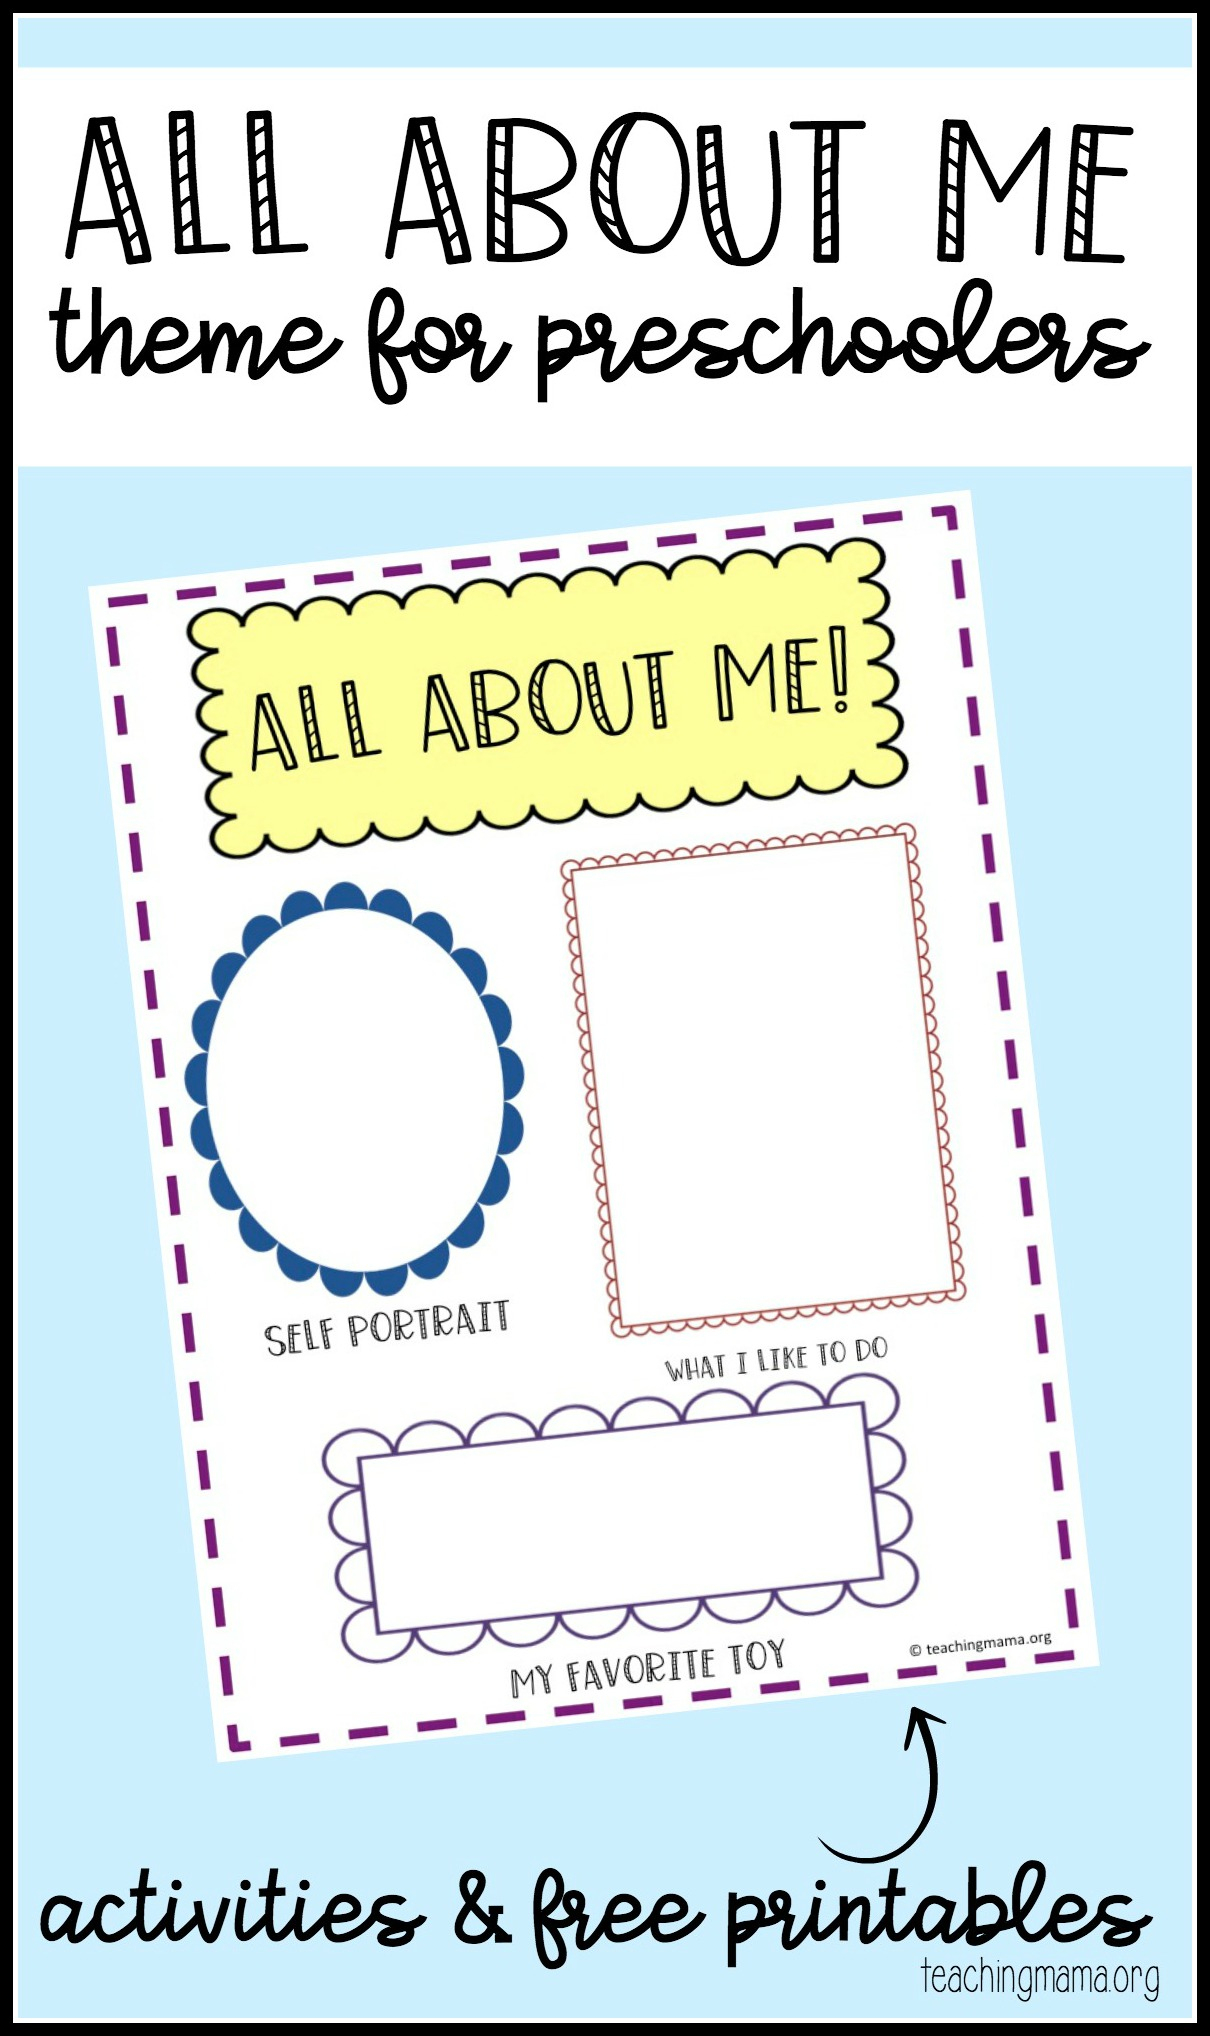 All About Me Preschool Theme - Free Printable Early Childhood Activities